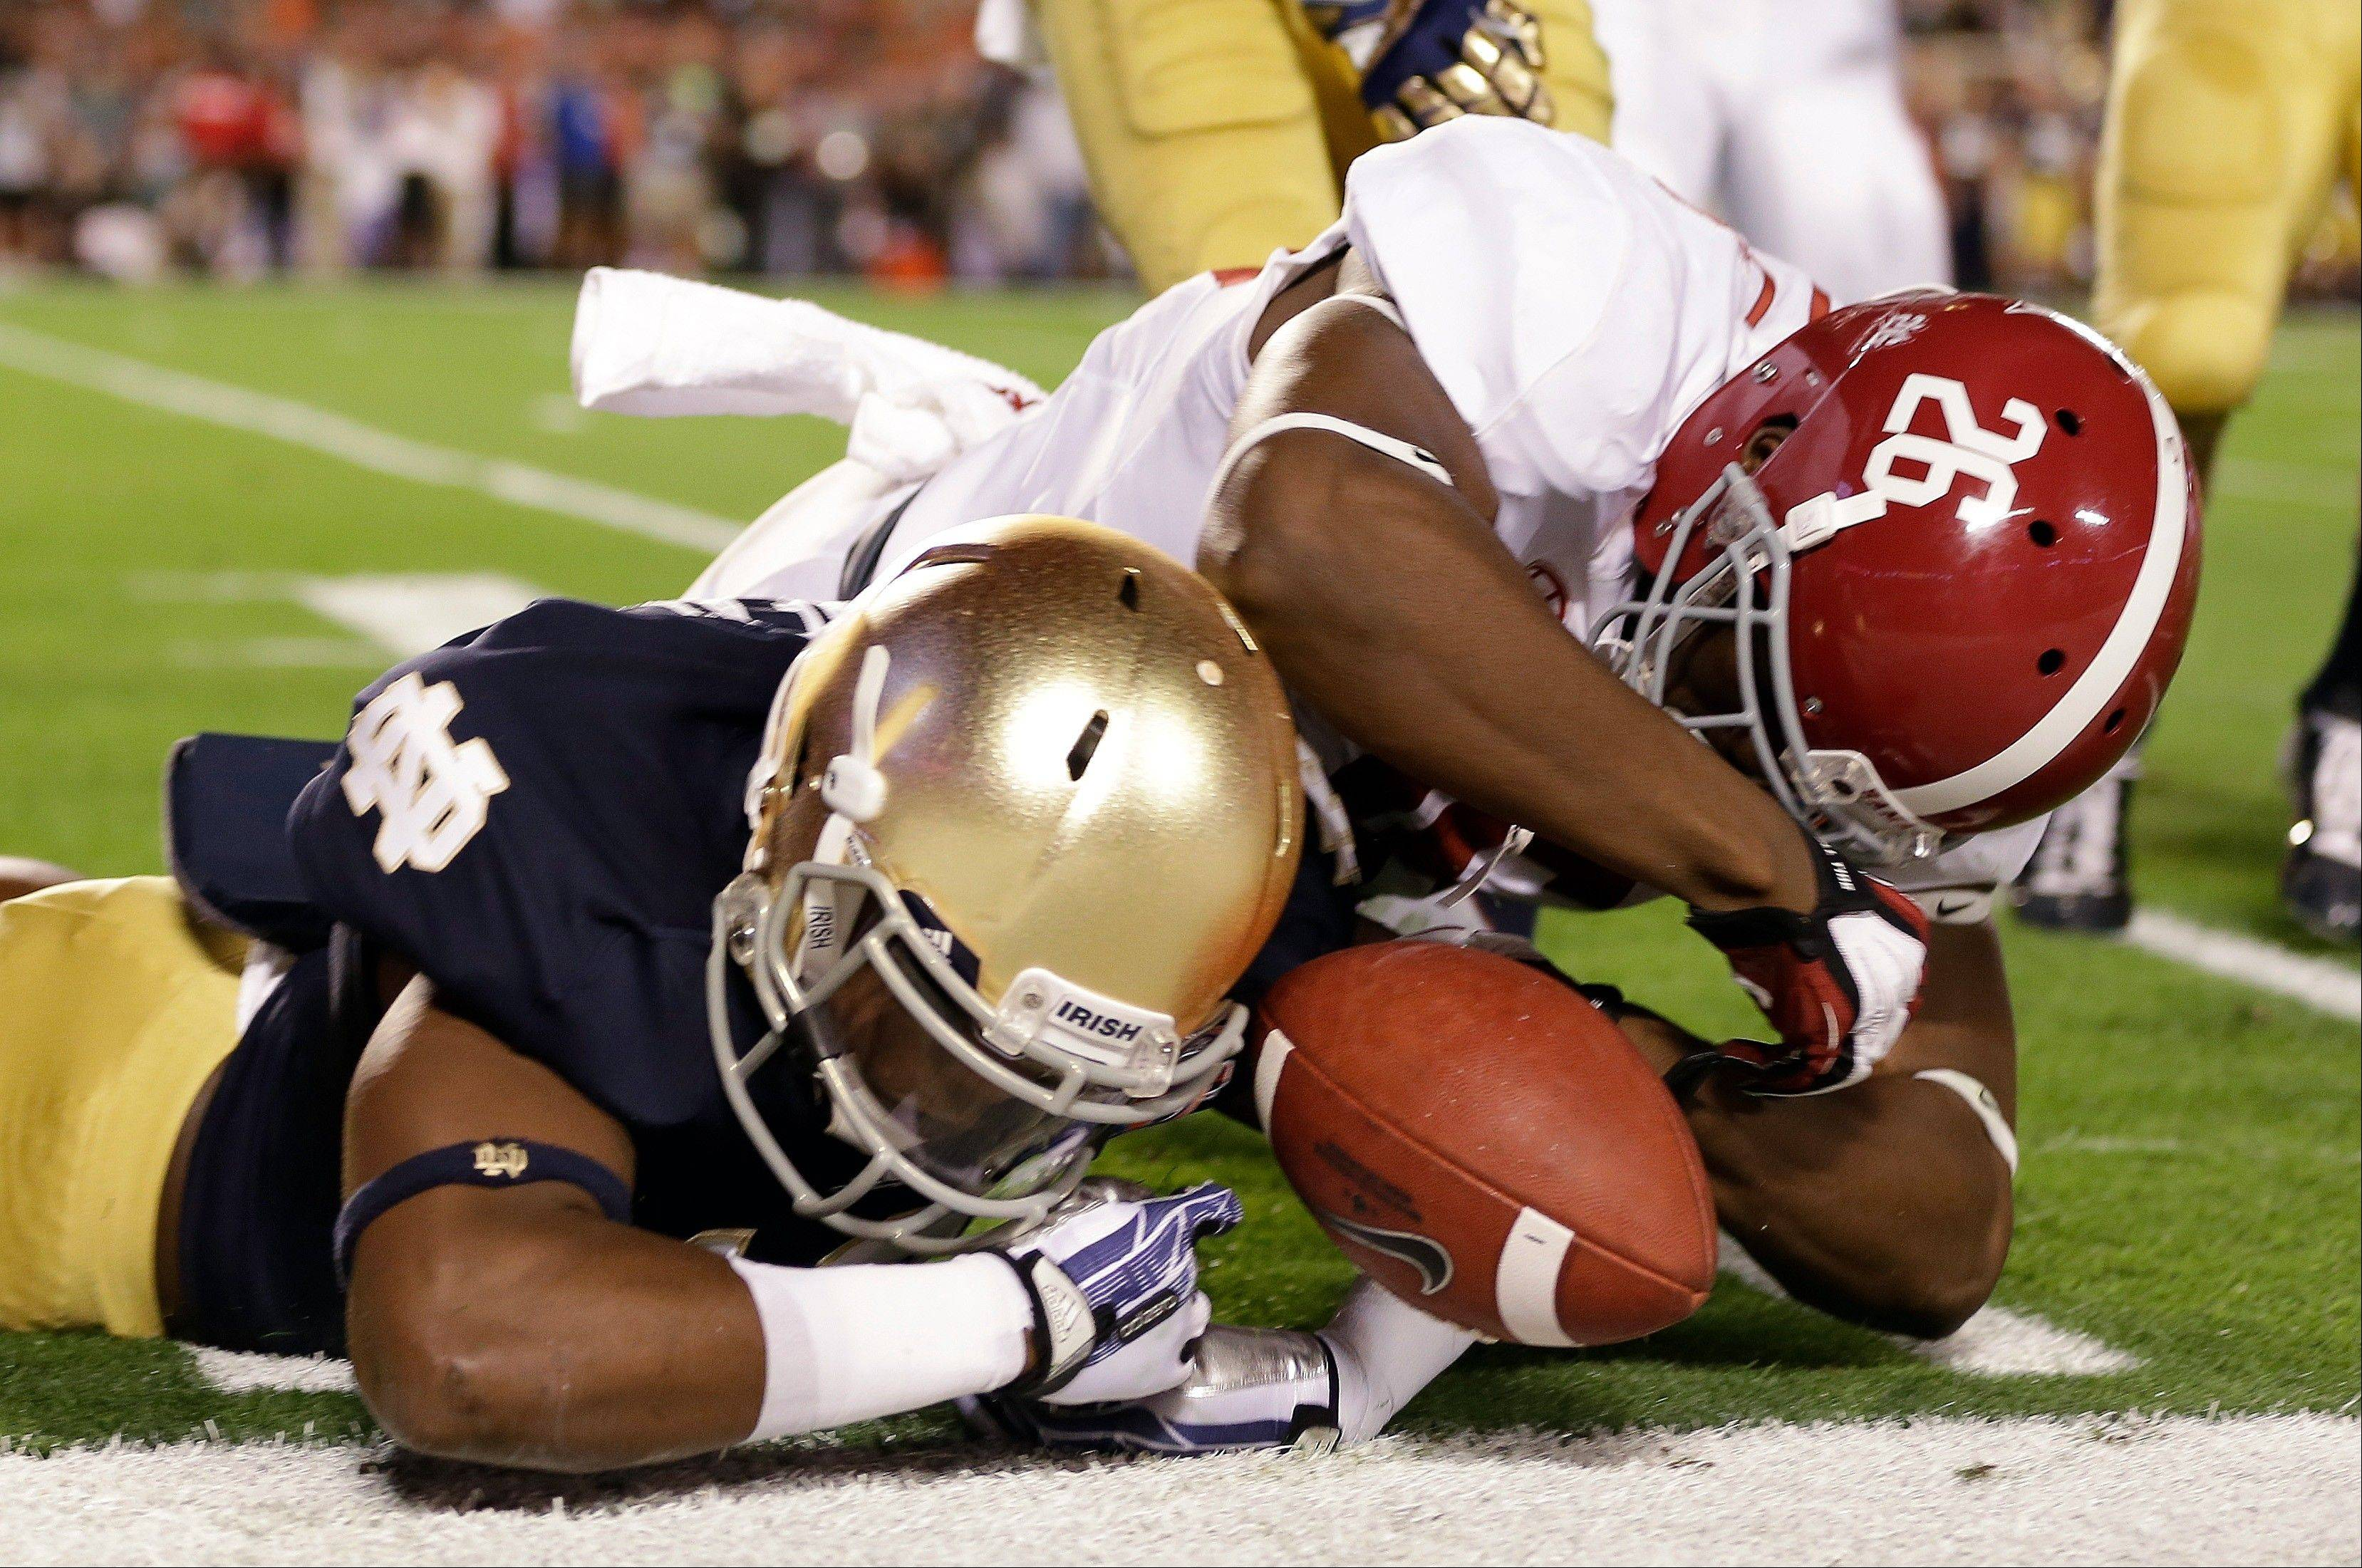 Alabama's Landon Collins (26) and Notre Dame's Davonte' Neal go after a fumbled punt during the first half of the BCS National Championship college football game Monday, Jan. 7, 2013, in Miami. The ball went out of bounds and Notre Dame retained possession.